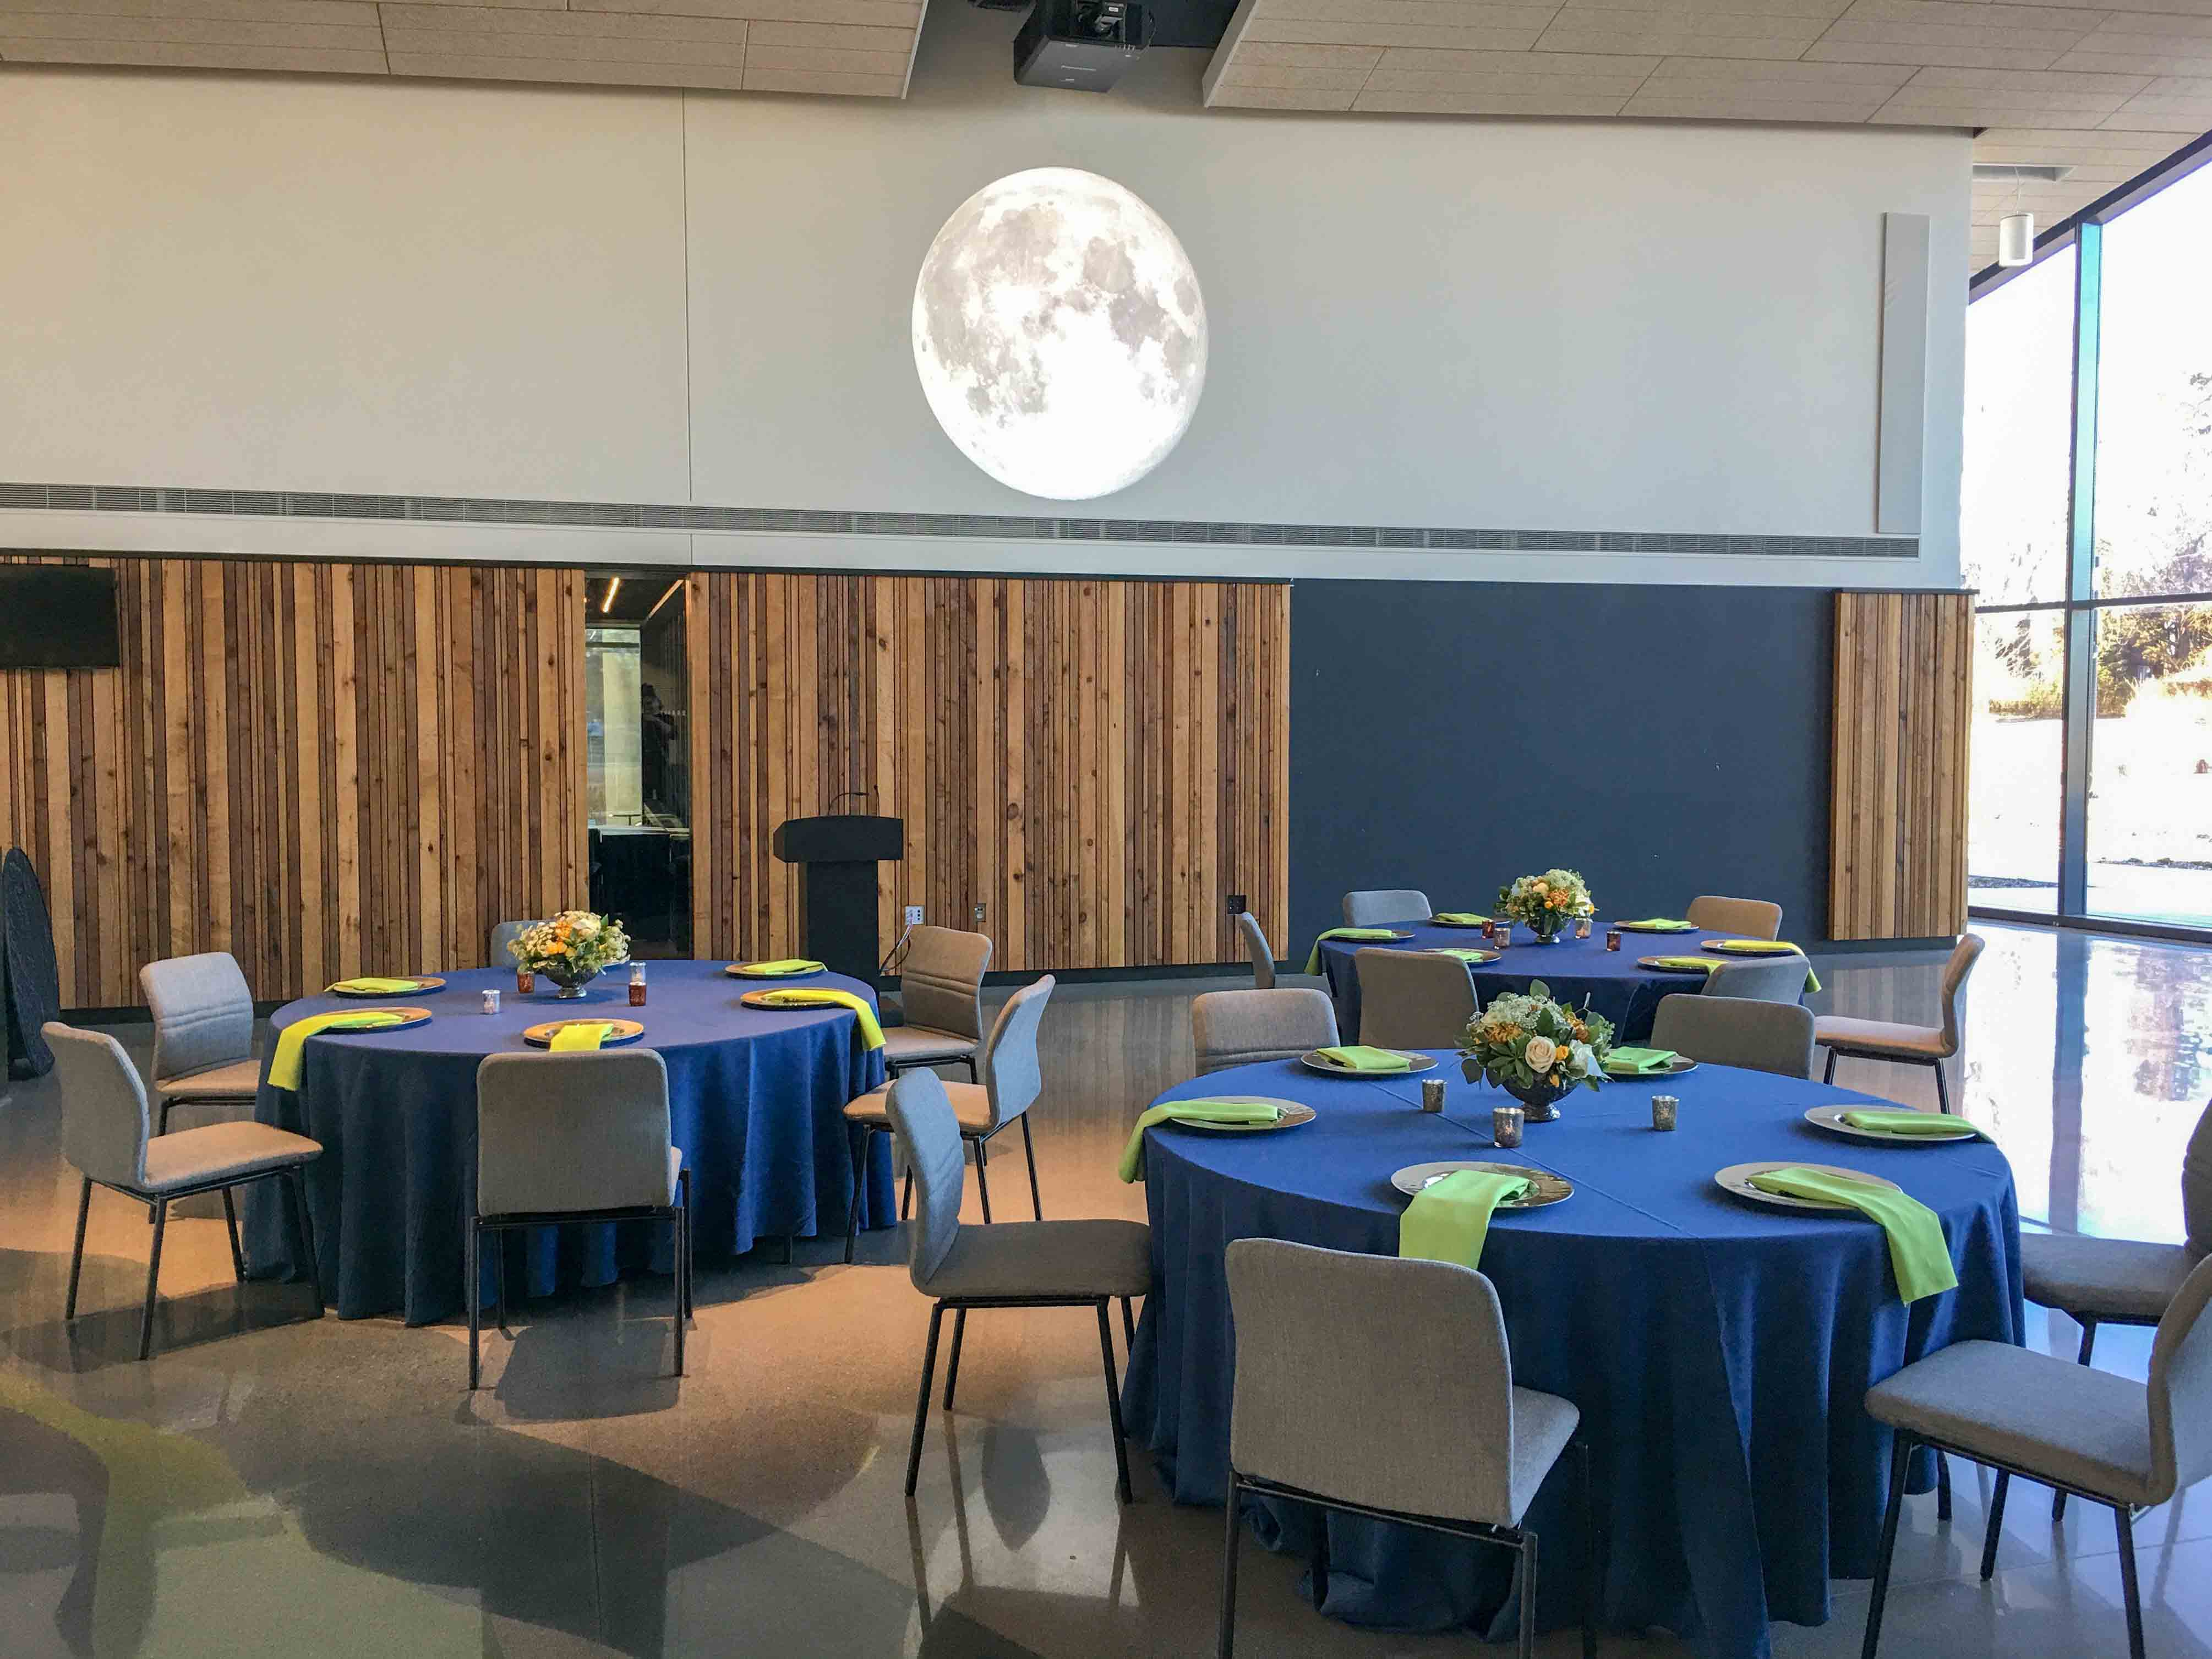 Round tables set for dinner in Horizon Hall, moon image projected onto the wall